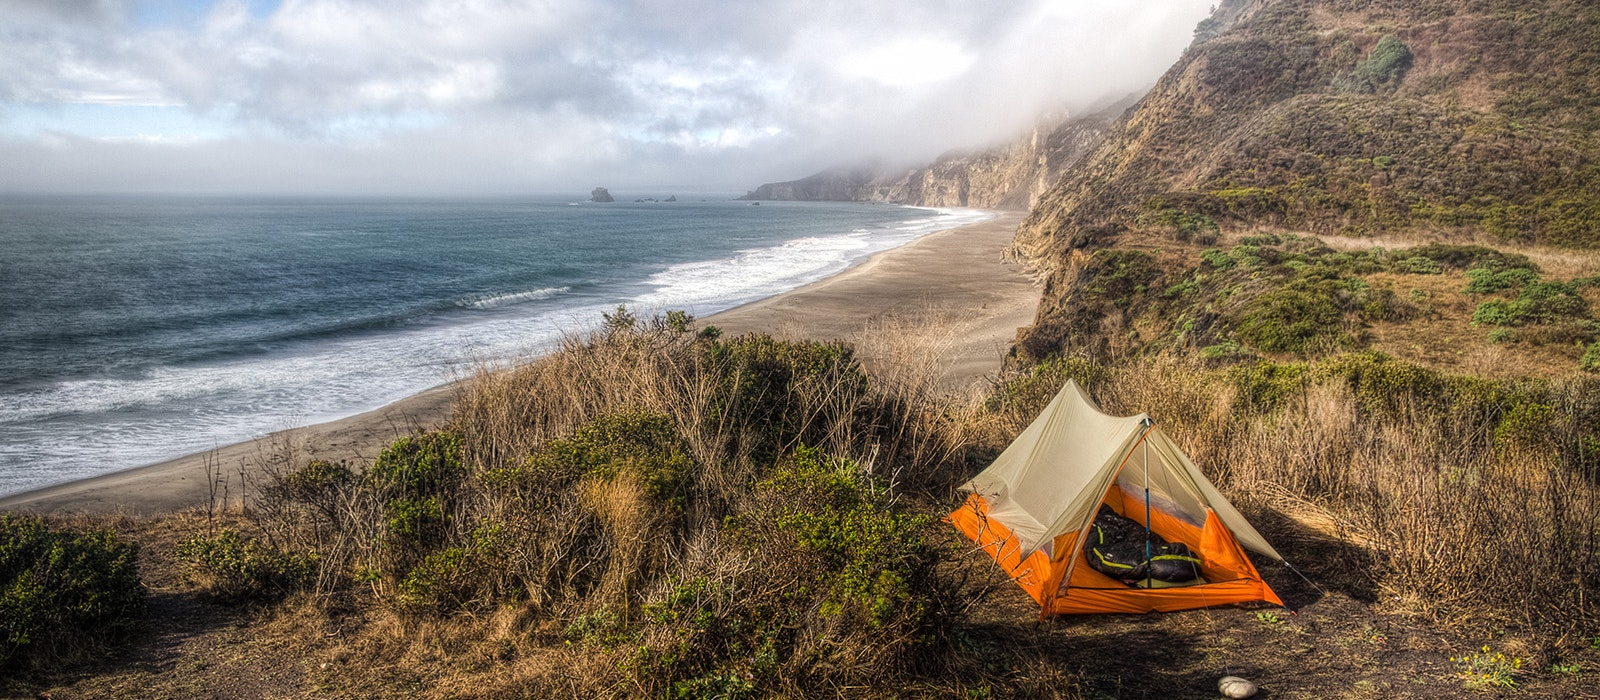 Enjoy sweeping views of the Pacific when you camp along California's coast.